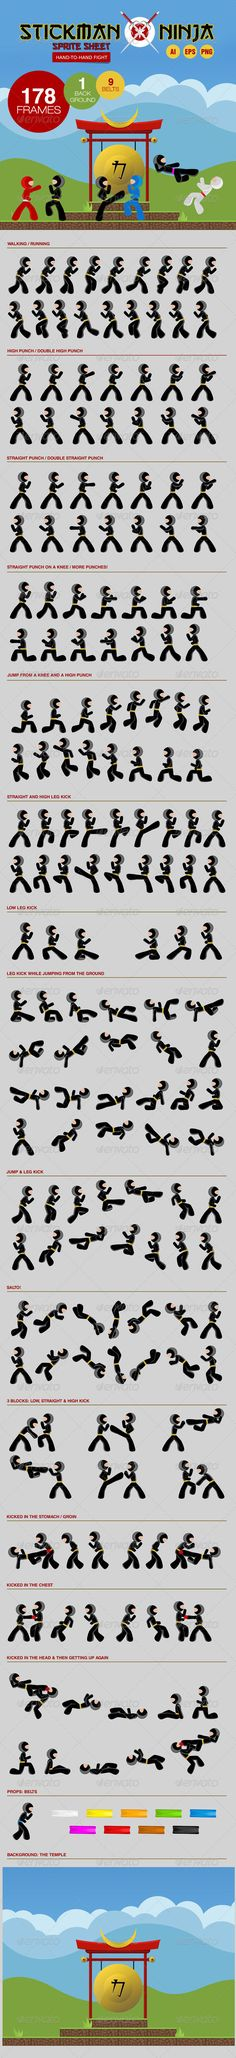 Stickman Ninja Sprite Sheet - Hand-To-Hand Fight  #graphicriver